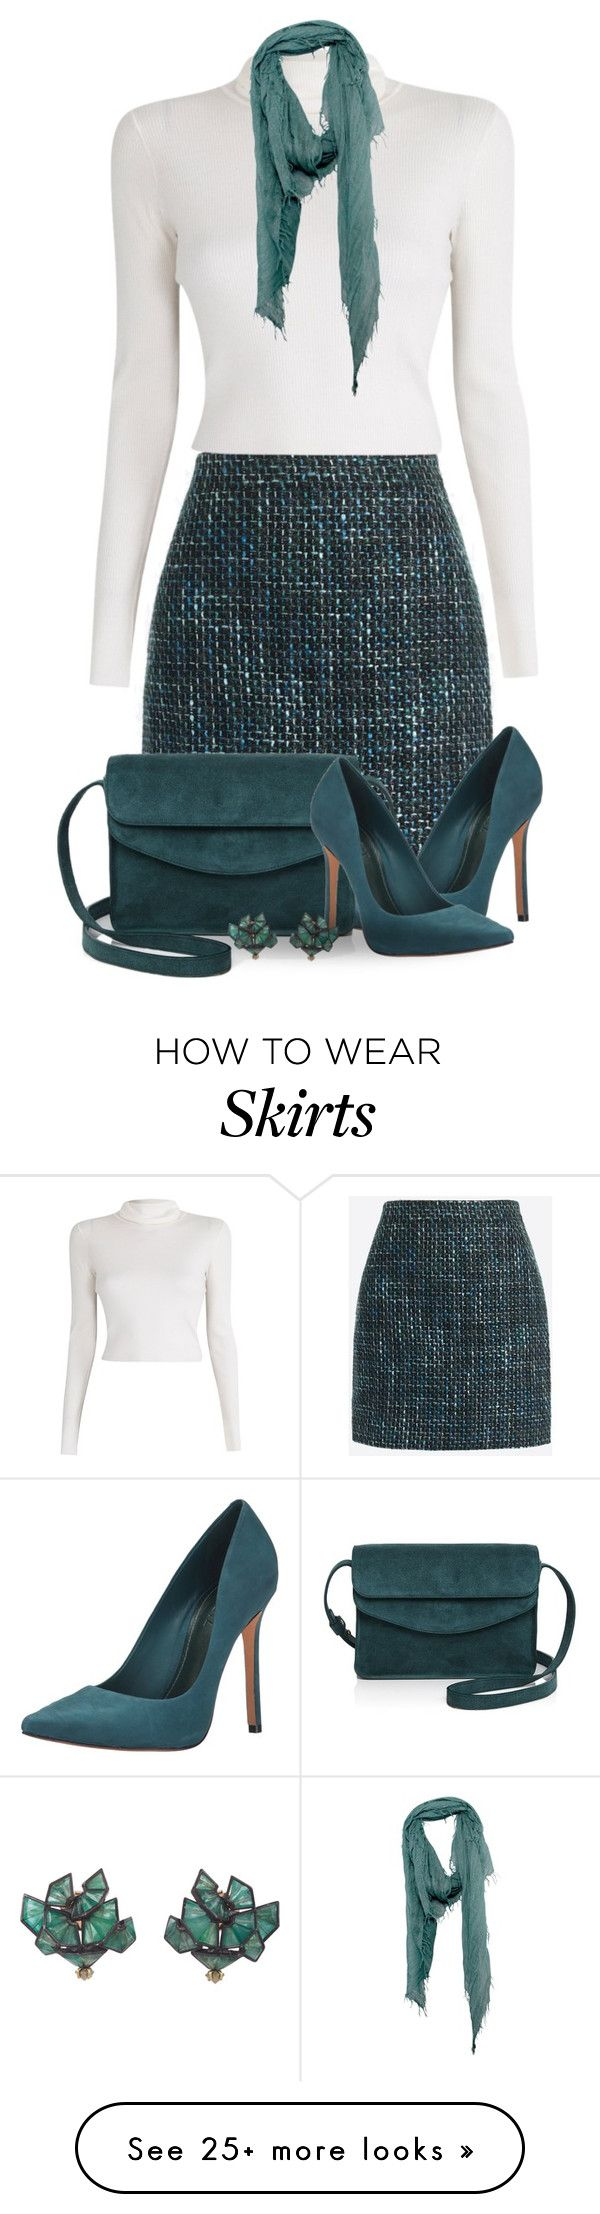 """Some Teal Love"" by jackie22 on Polyvore featuring J.Crew, Schutz, Illesteva, A.L.C., Chan Luu, Nak Armstrong, teal, twead and suedebag"